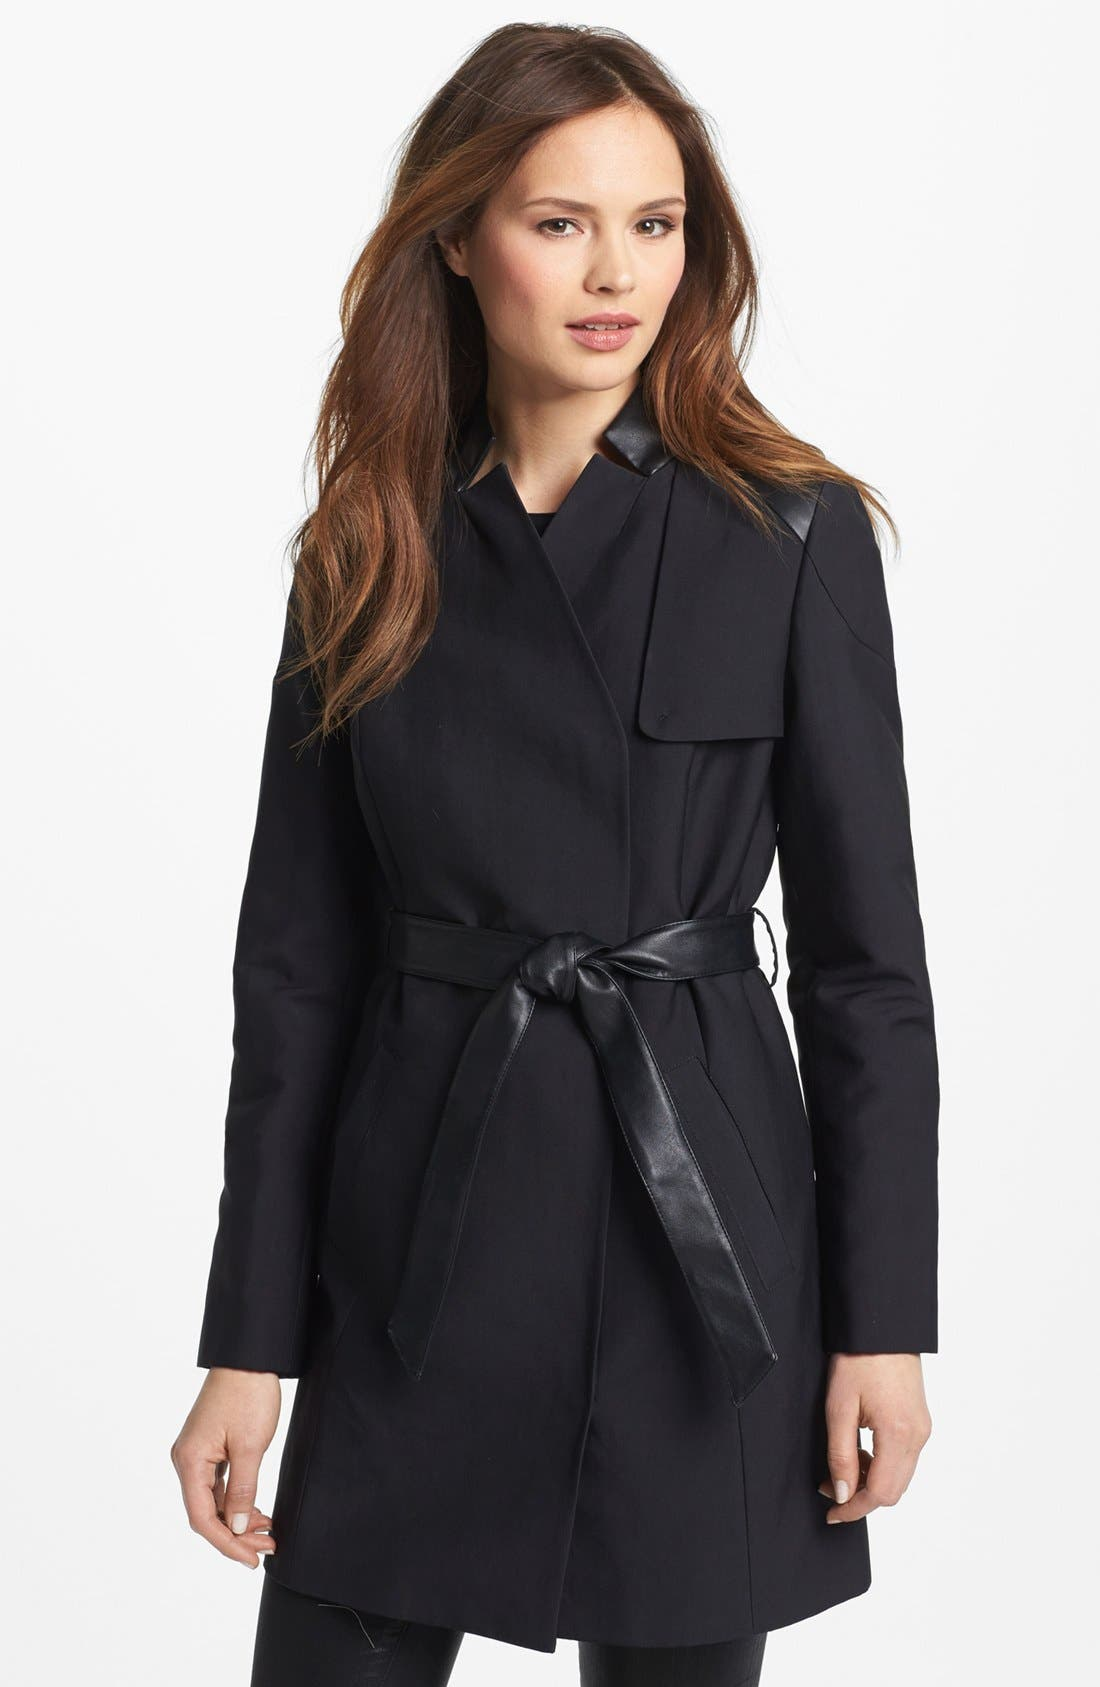 Alternate Image 1 Selected - French Connection Faux Leather Trim Trench Coat (Online Only)